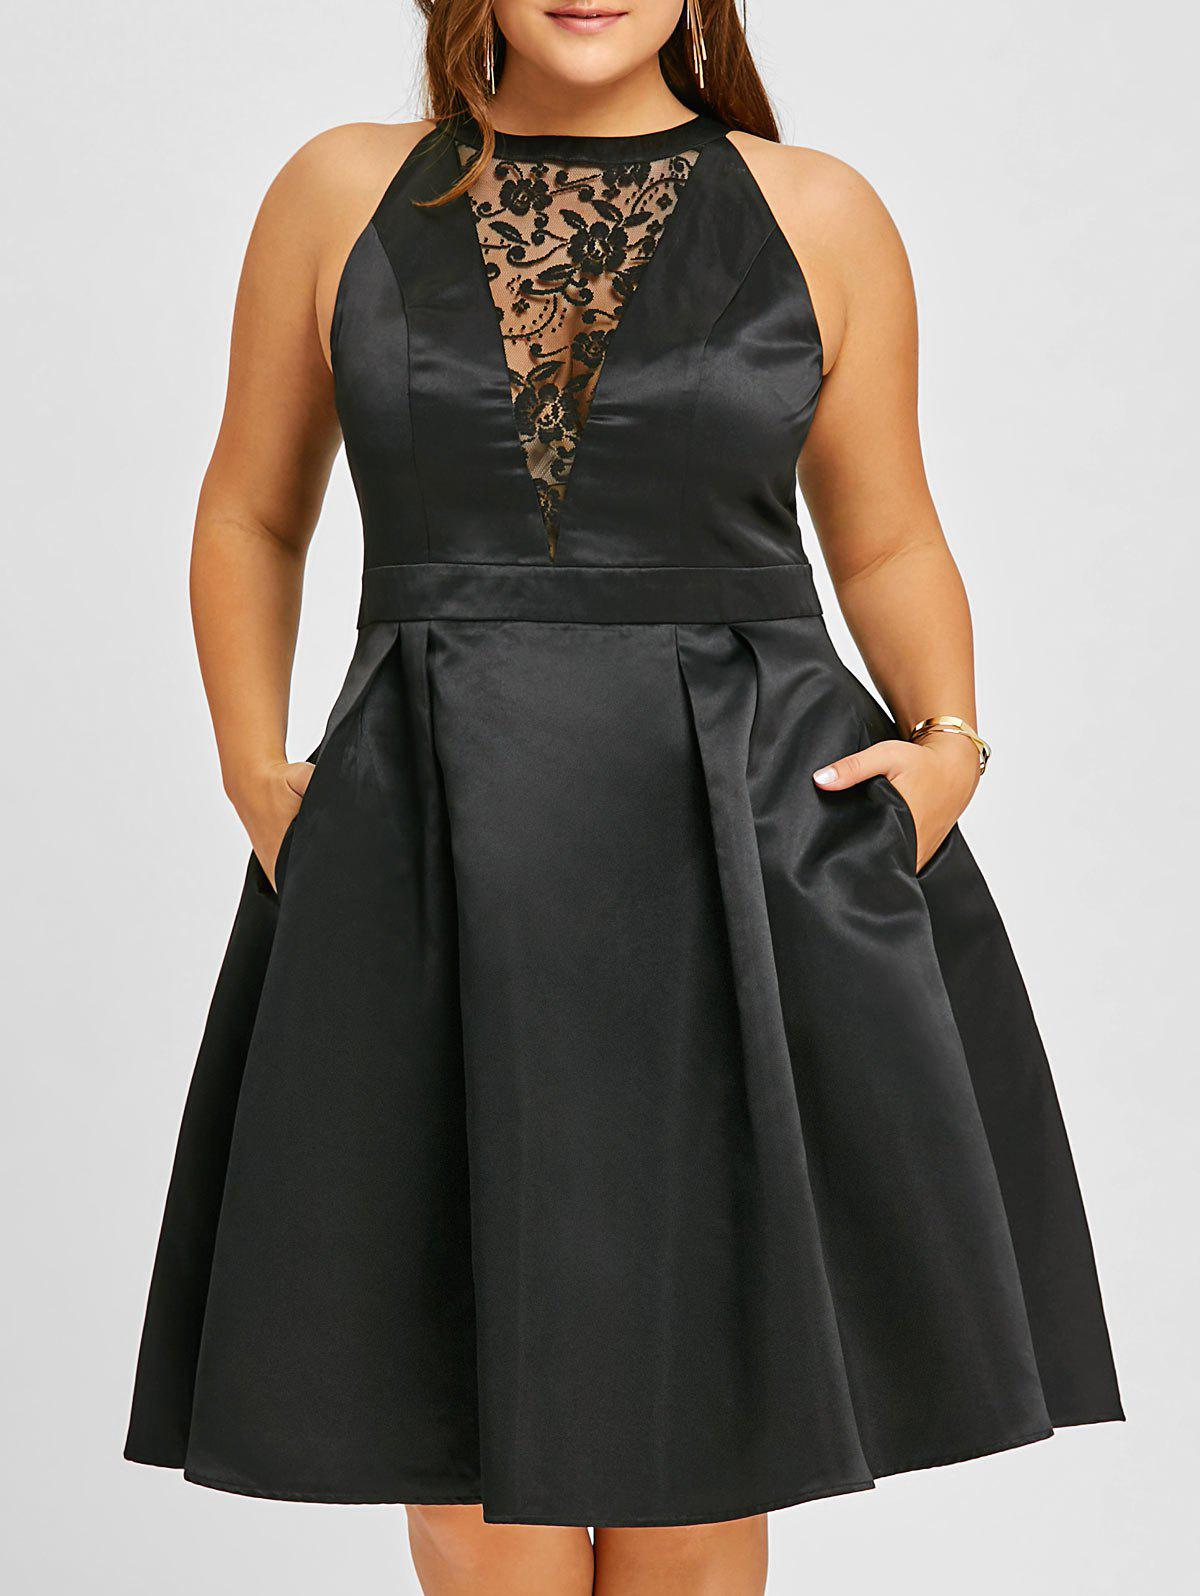 Plus Size Semi Cocktail Lace Insert Swing DressWOMEN<br><br>Size: XL; Color: BLACK; Style: Vintage; Material: Polyester; Silhouette: A-Line; Dresses Length: Knee-Length; Neckline: Round Collar; Sleeve Length: Sleeveless; Embellishment: Lace; Pattern Type: Floral; With Belt: No; Season: Fall,Spring; Weight: 0.4700kg; Package Contents: 1 x Dress;